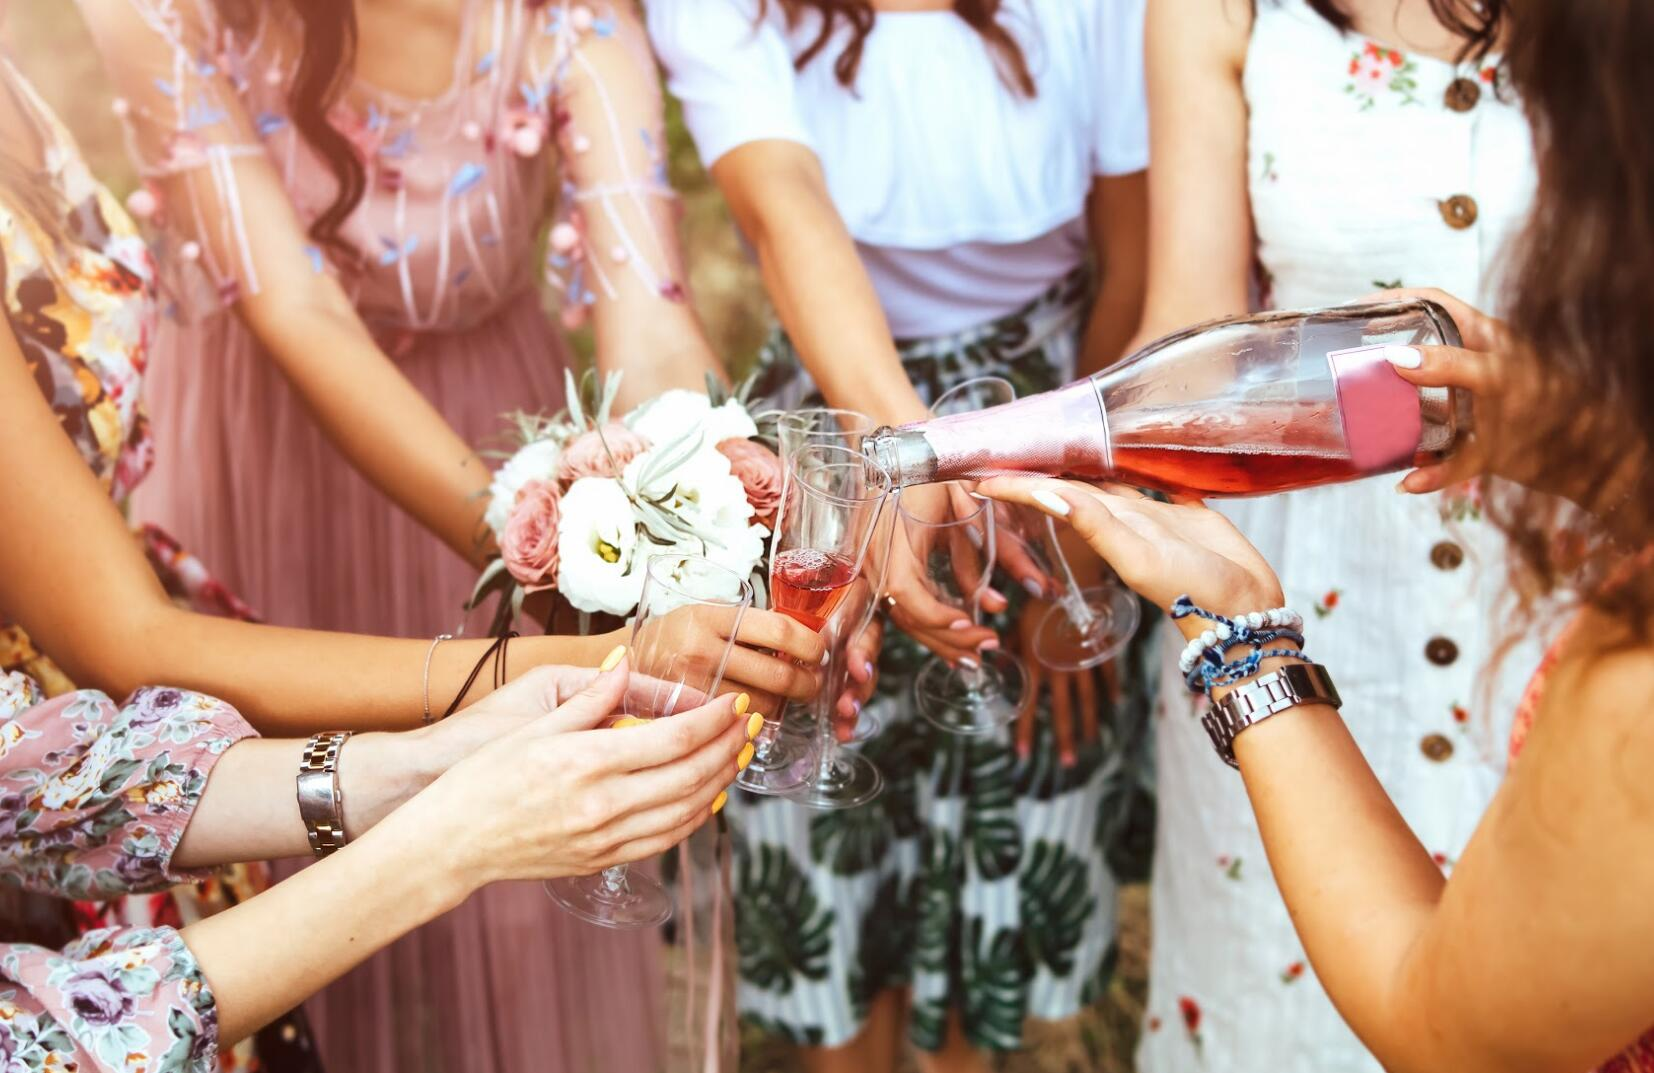 wedding the big day pre 7 Styling Tips For Wedding Events Leading Up To The Big Day